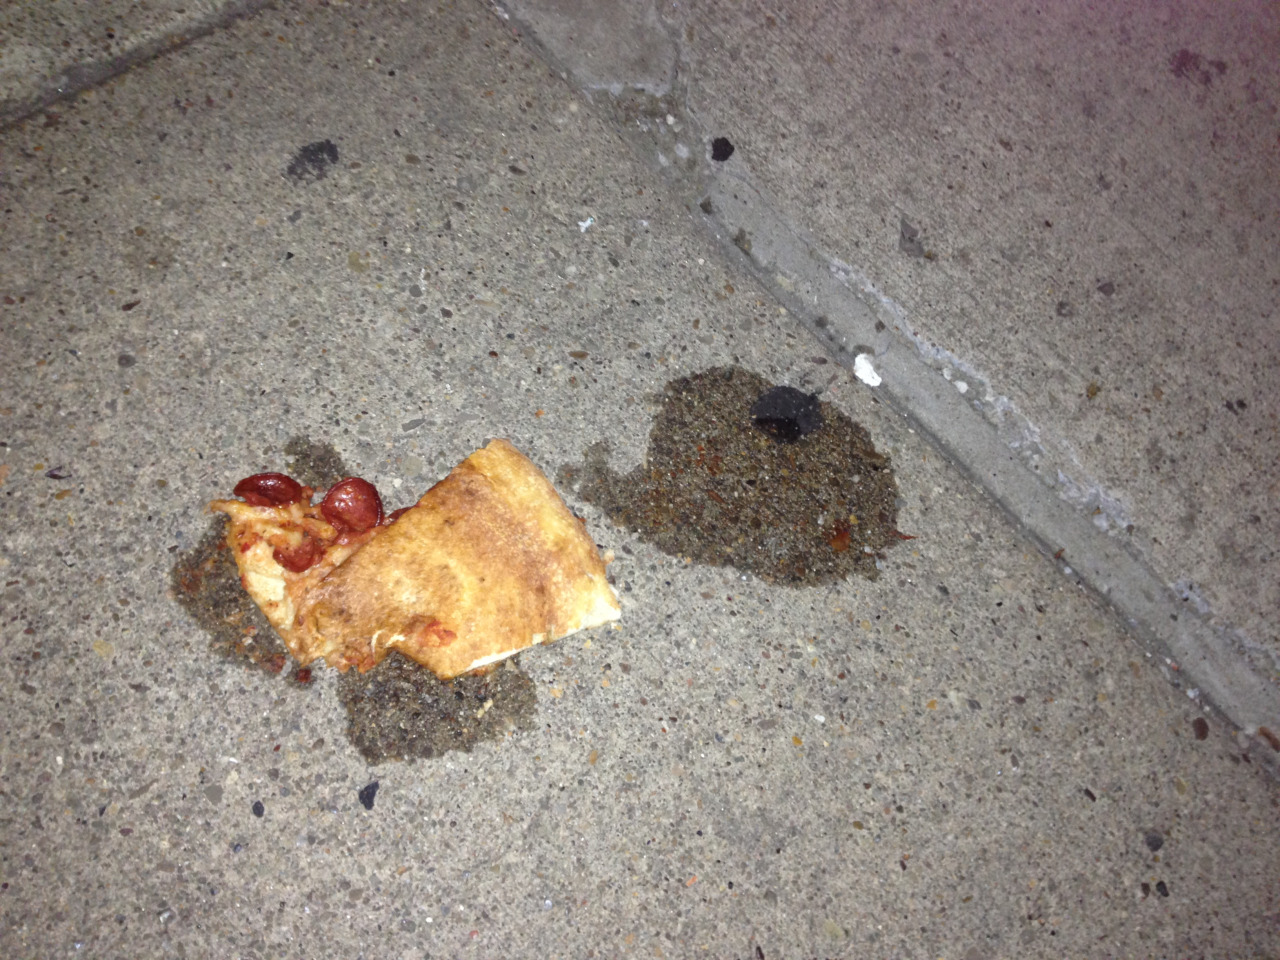 Law & Order: Pizza Victims Unit. Along a dismal sidewalk that can't make up its mind between being dark grey or slate grey, lies this poor pizza. This sidewalk, much like the neighbors, is indifferent to the corpse of a pizza. Just a standard note in the harmony of life. The pizza, young and full of pepperoni, was mangled and sliced in half. The grease marks left behind are plentiful and denote a playful death. This pizza did not go quiet into the good oven.